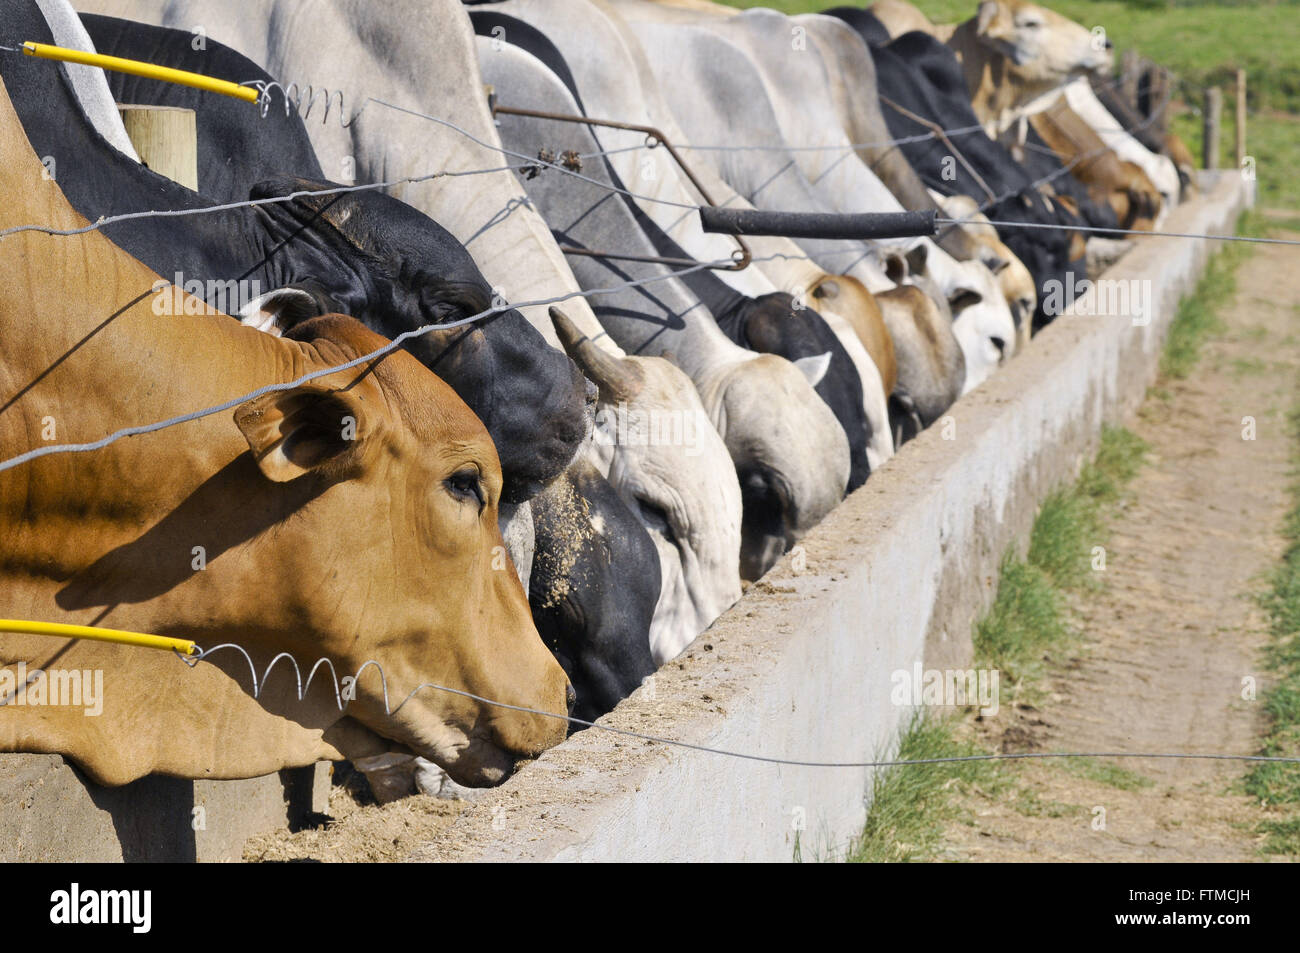 Creation of confined cattle Mestico eating at the trough - Stock Image